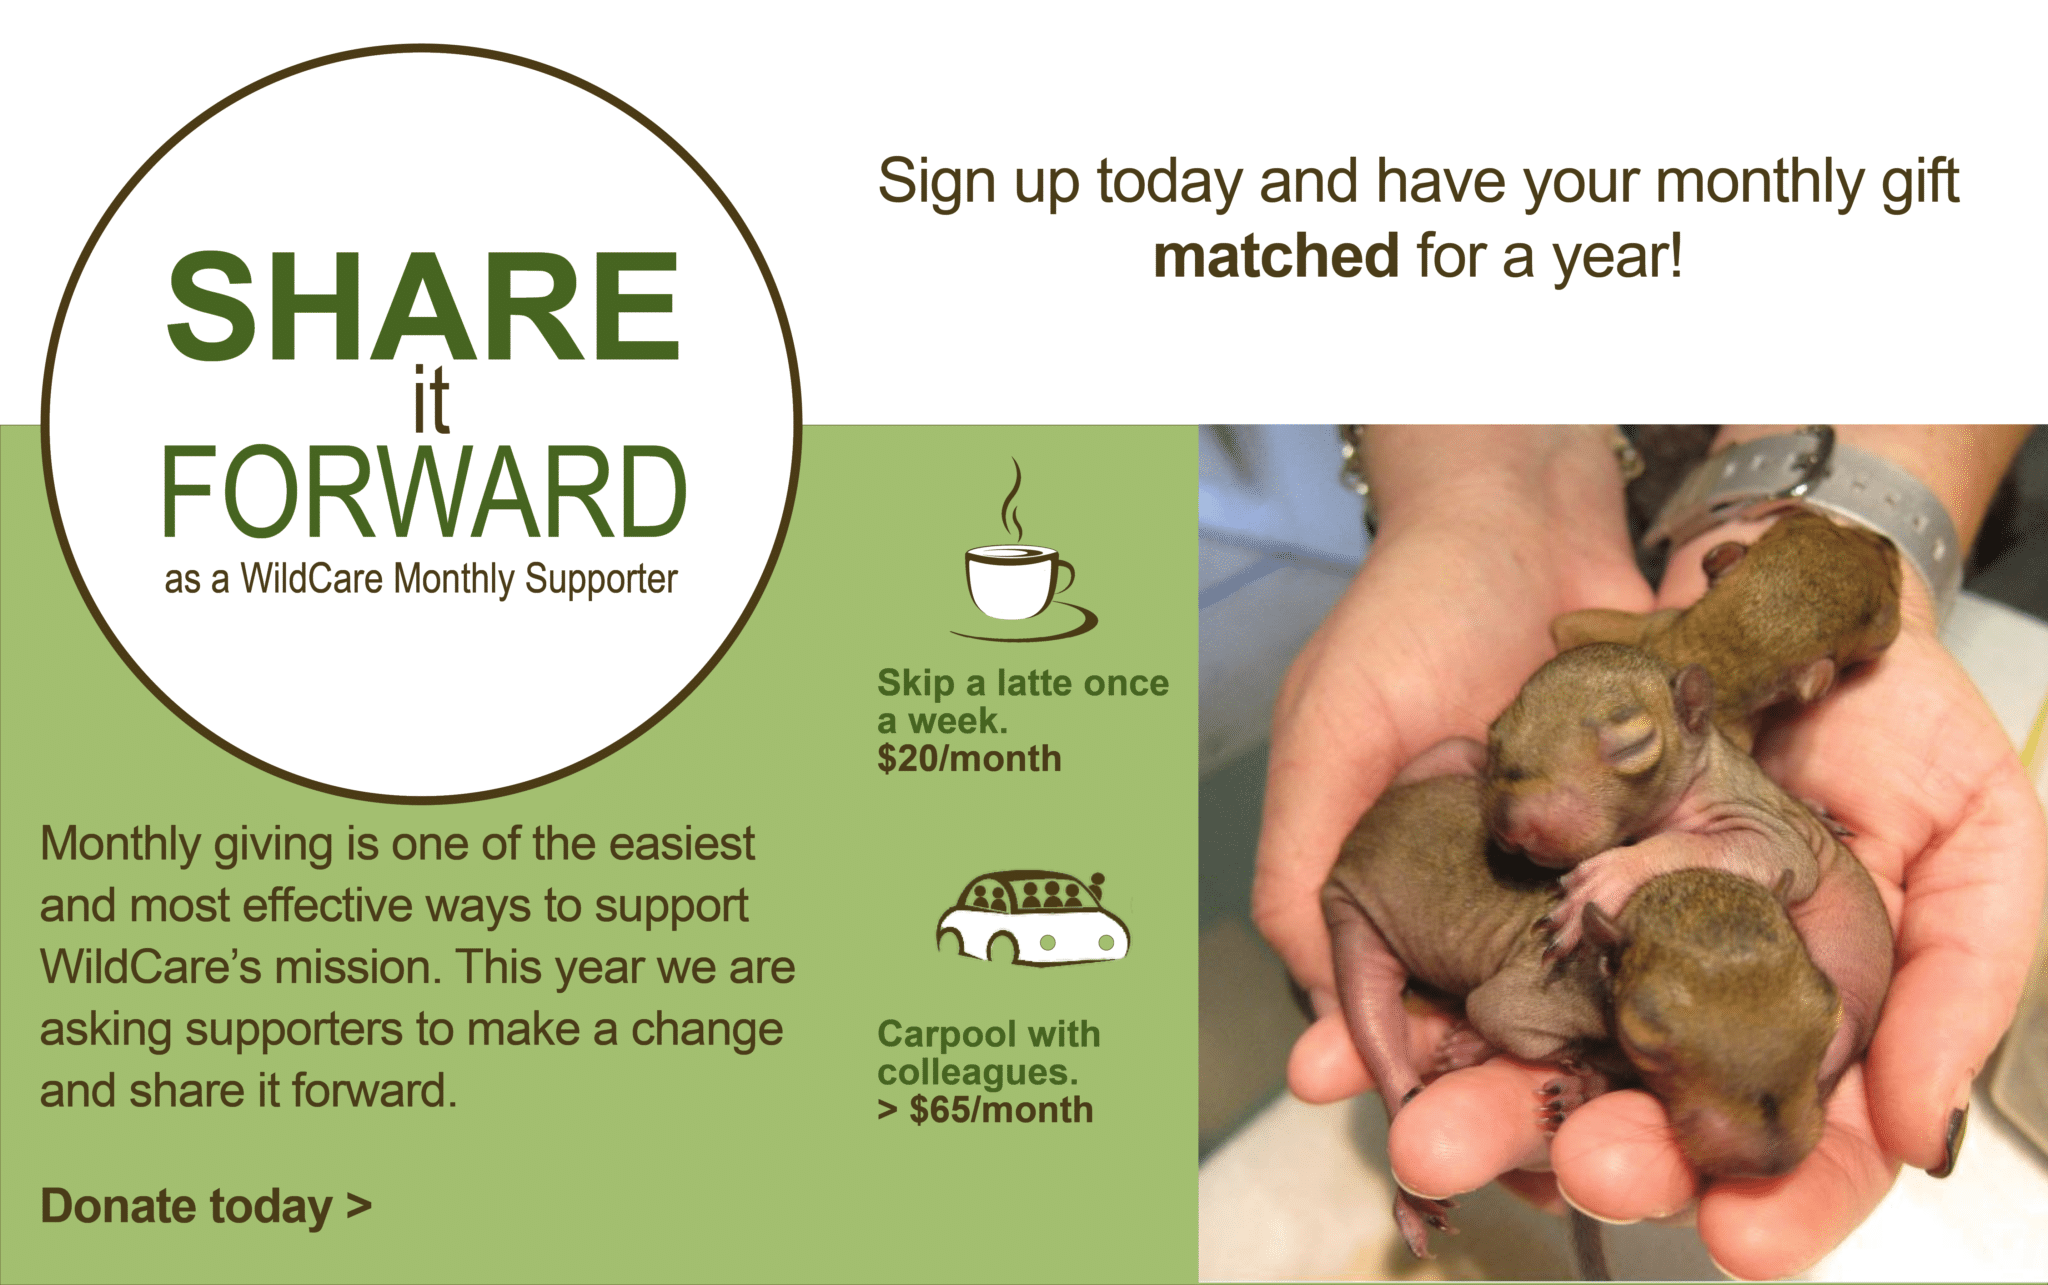 Share it Forward! Become a Monthly Donor today!